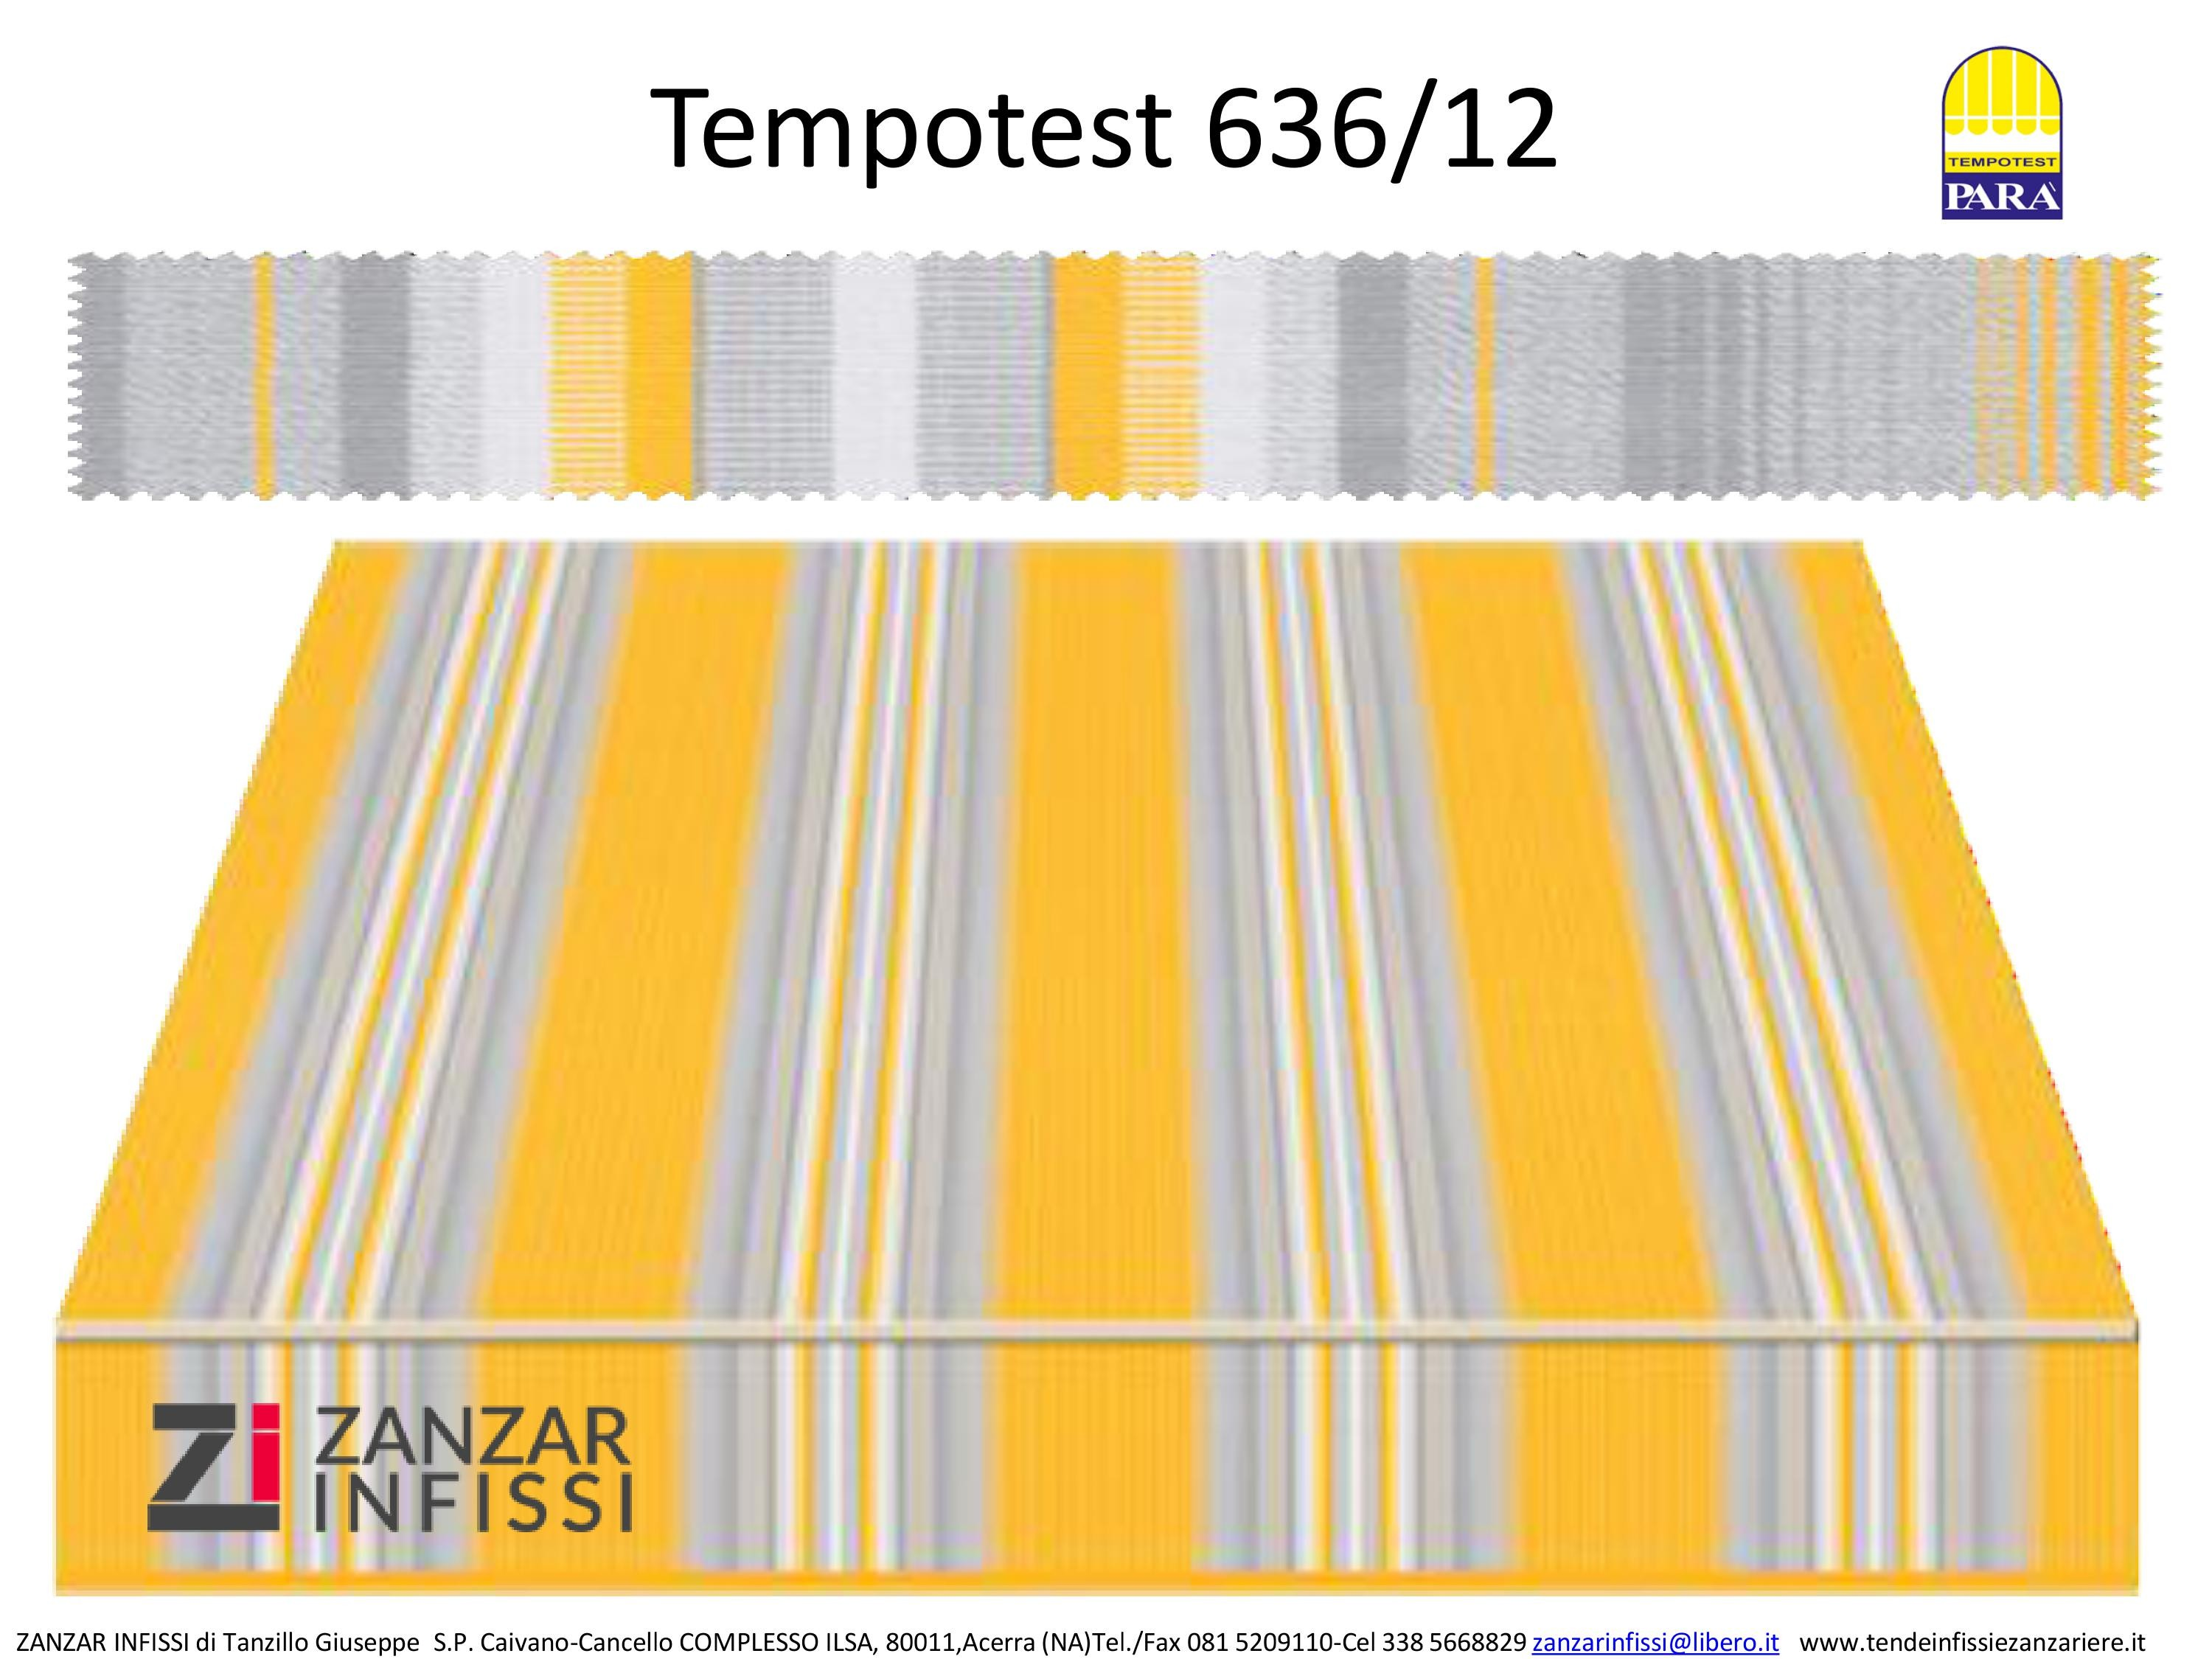 Tempotest 636/12